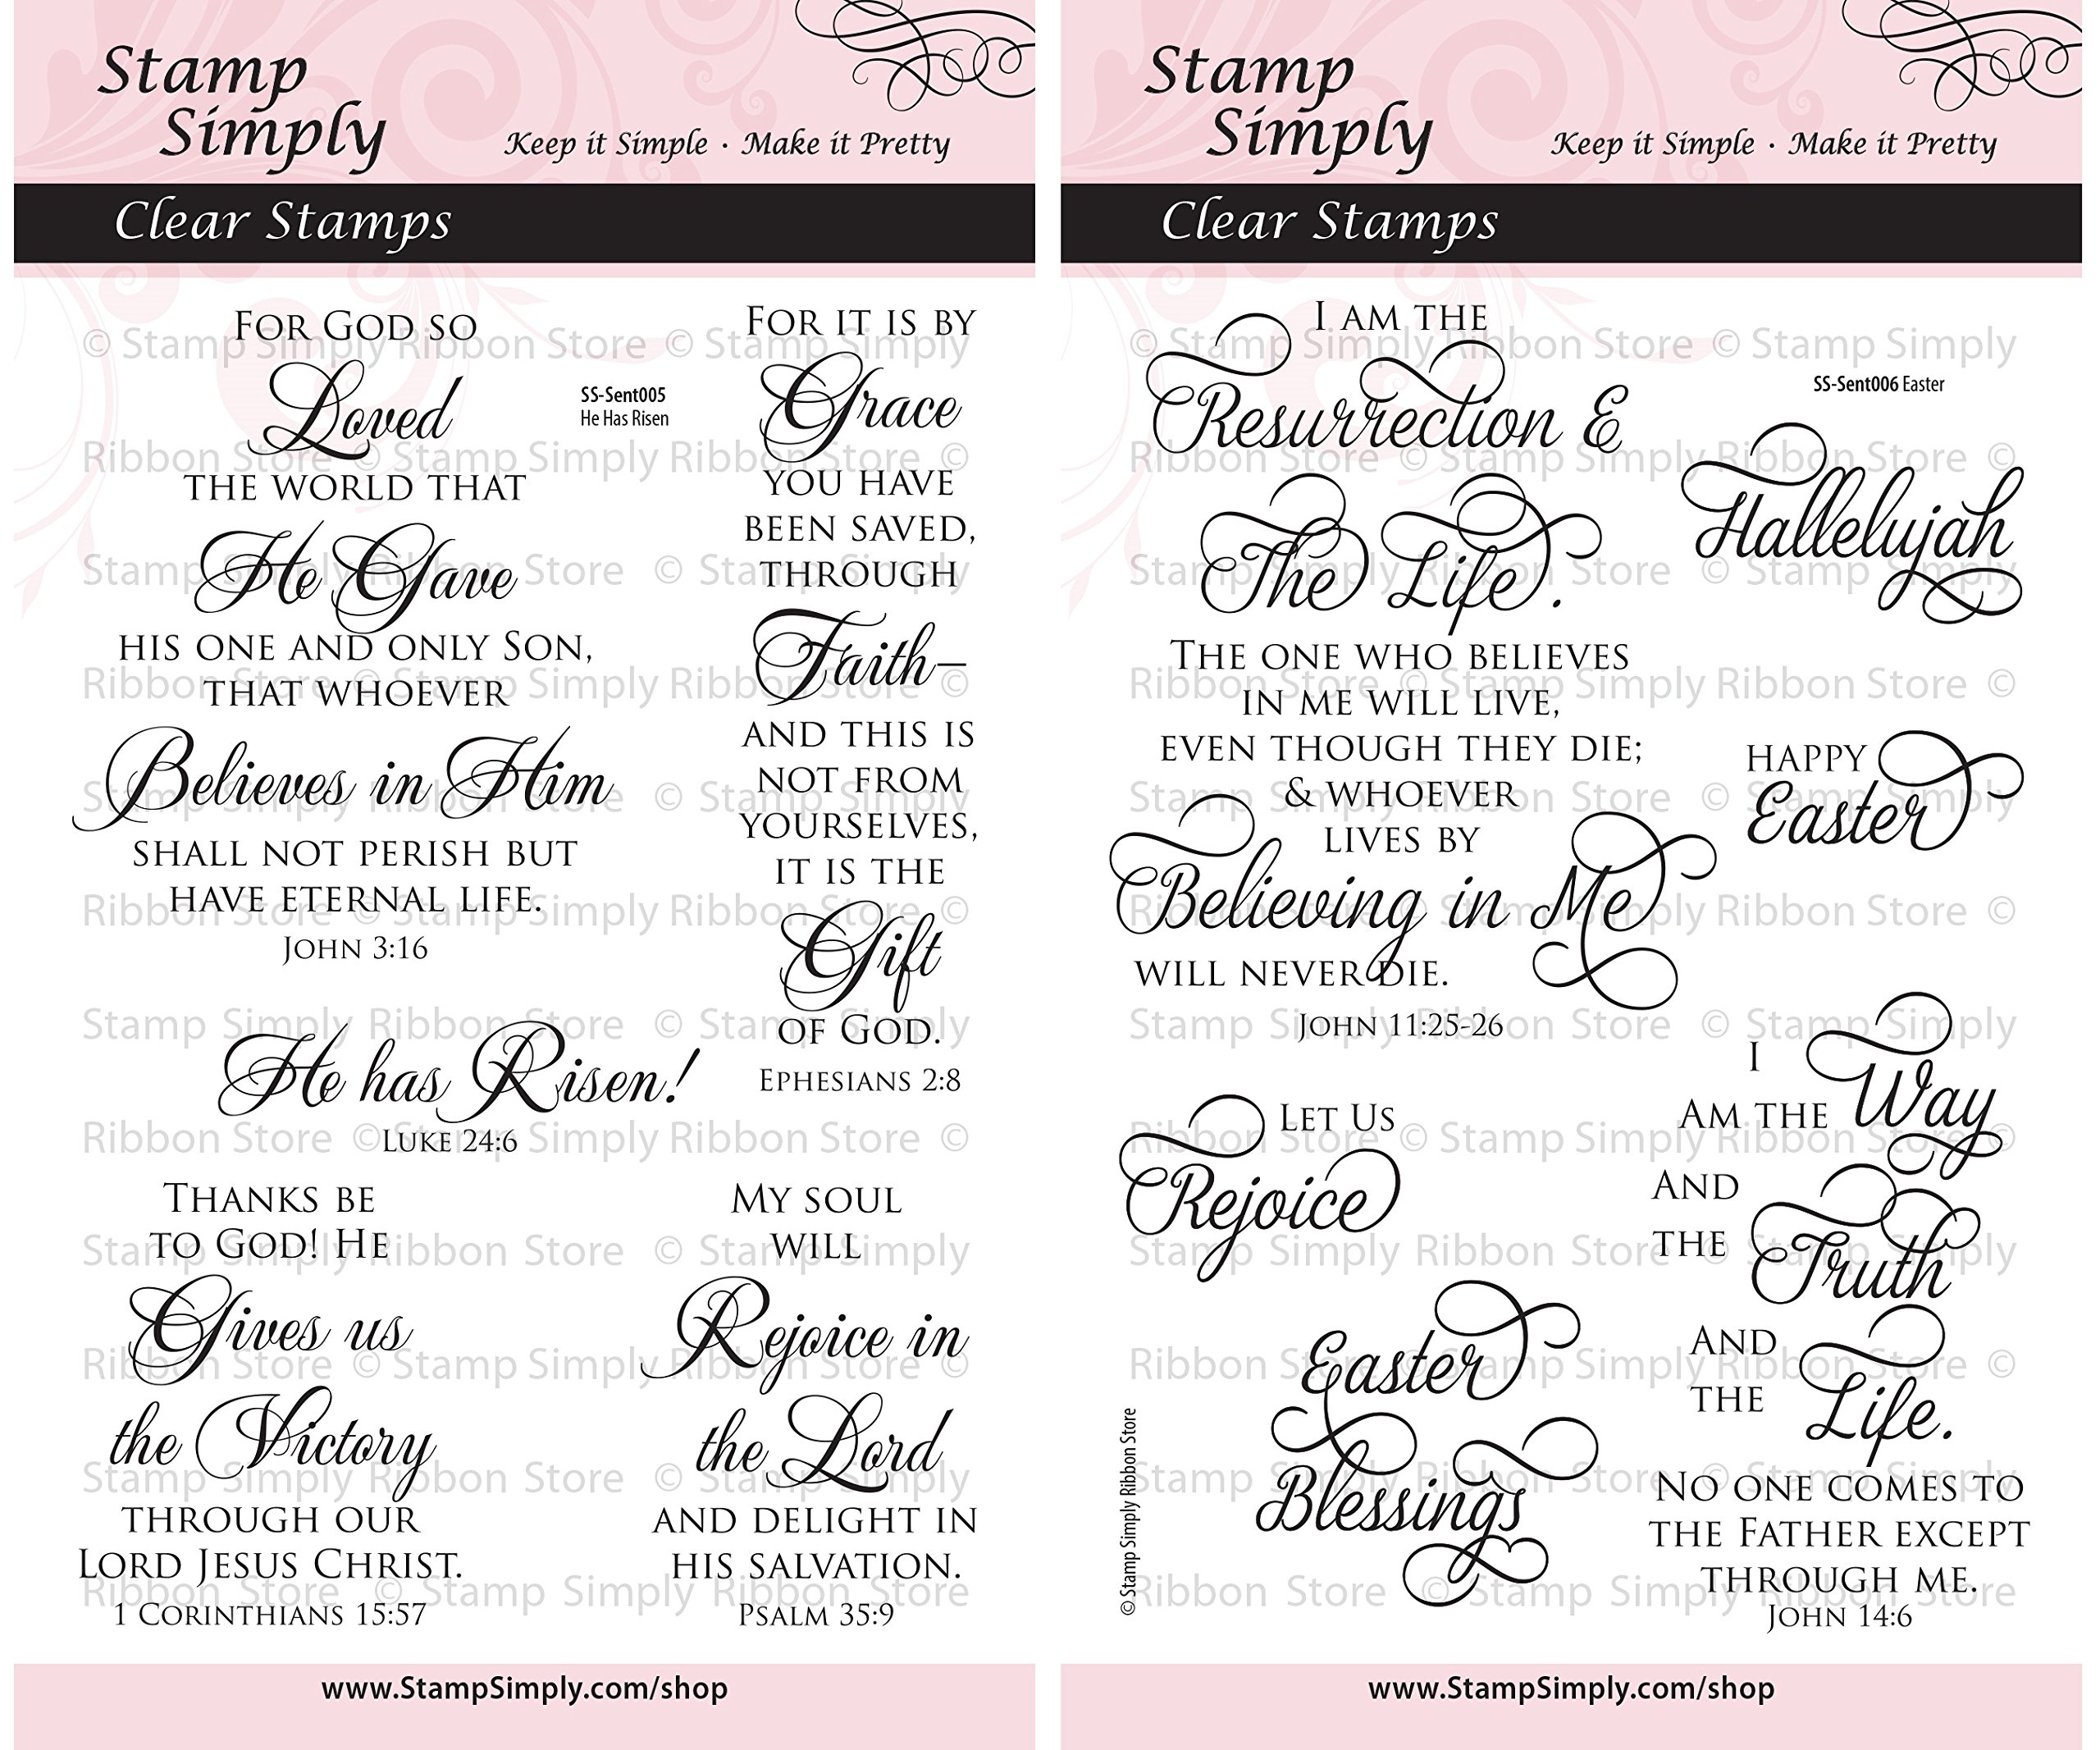 Stamp Simply Clear Stamps Easter Scripture Christian Religious (2-Pack) 4x6 Inch Sheets - 11 Pieces